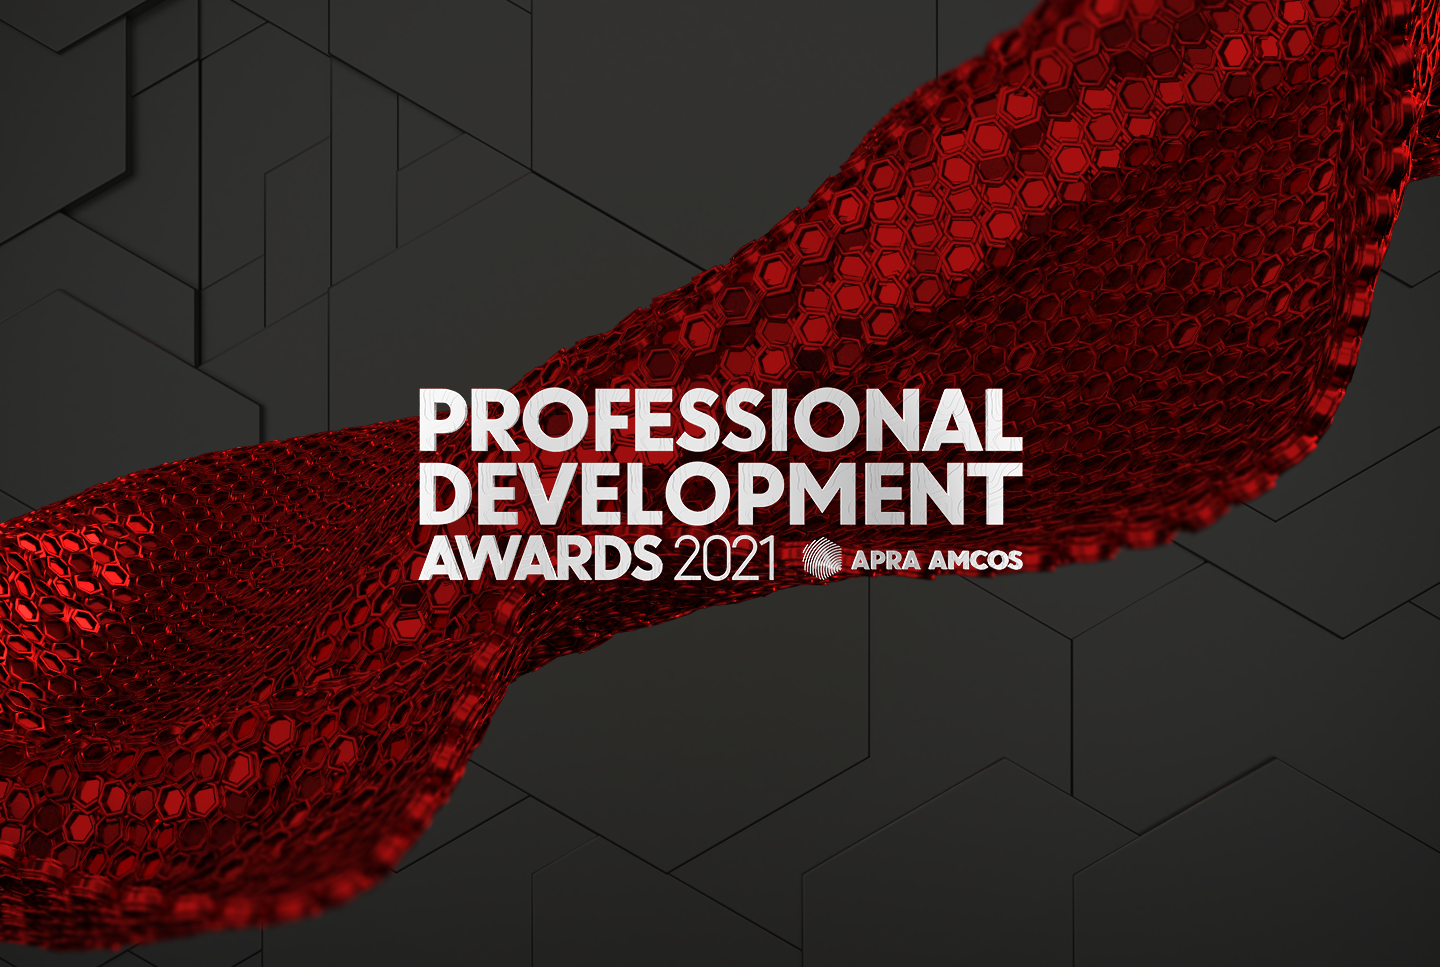 The Professional Development Awards logo a red banner on a black background